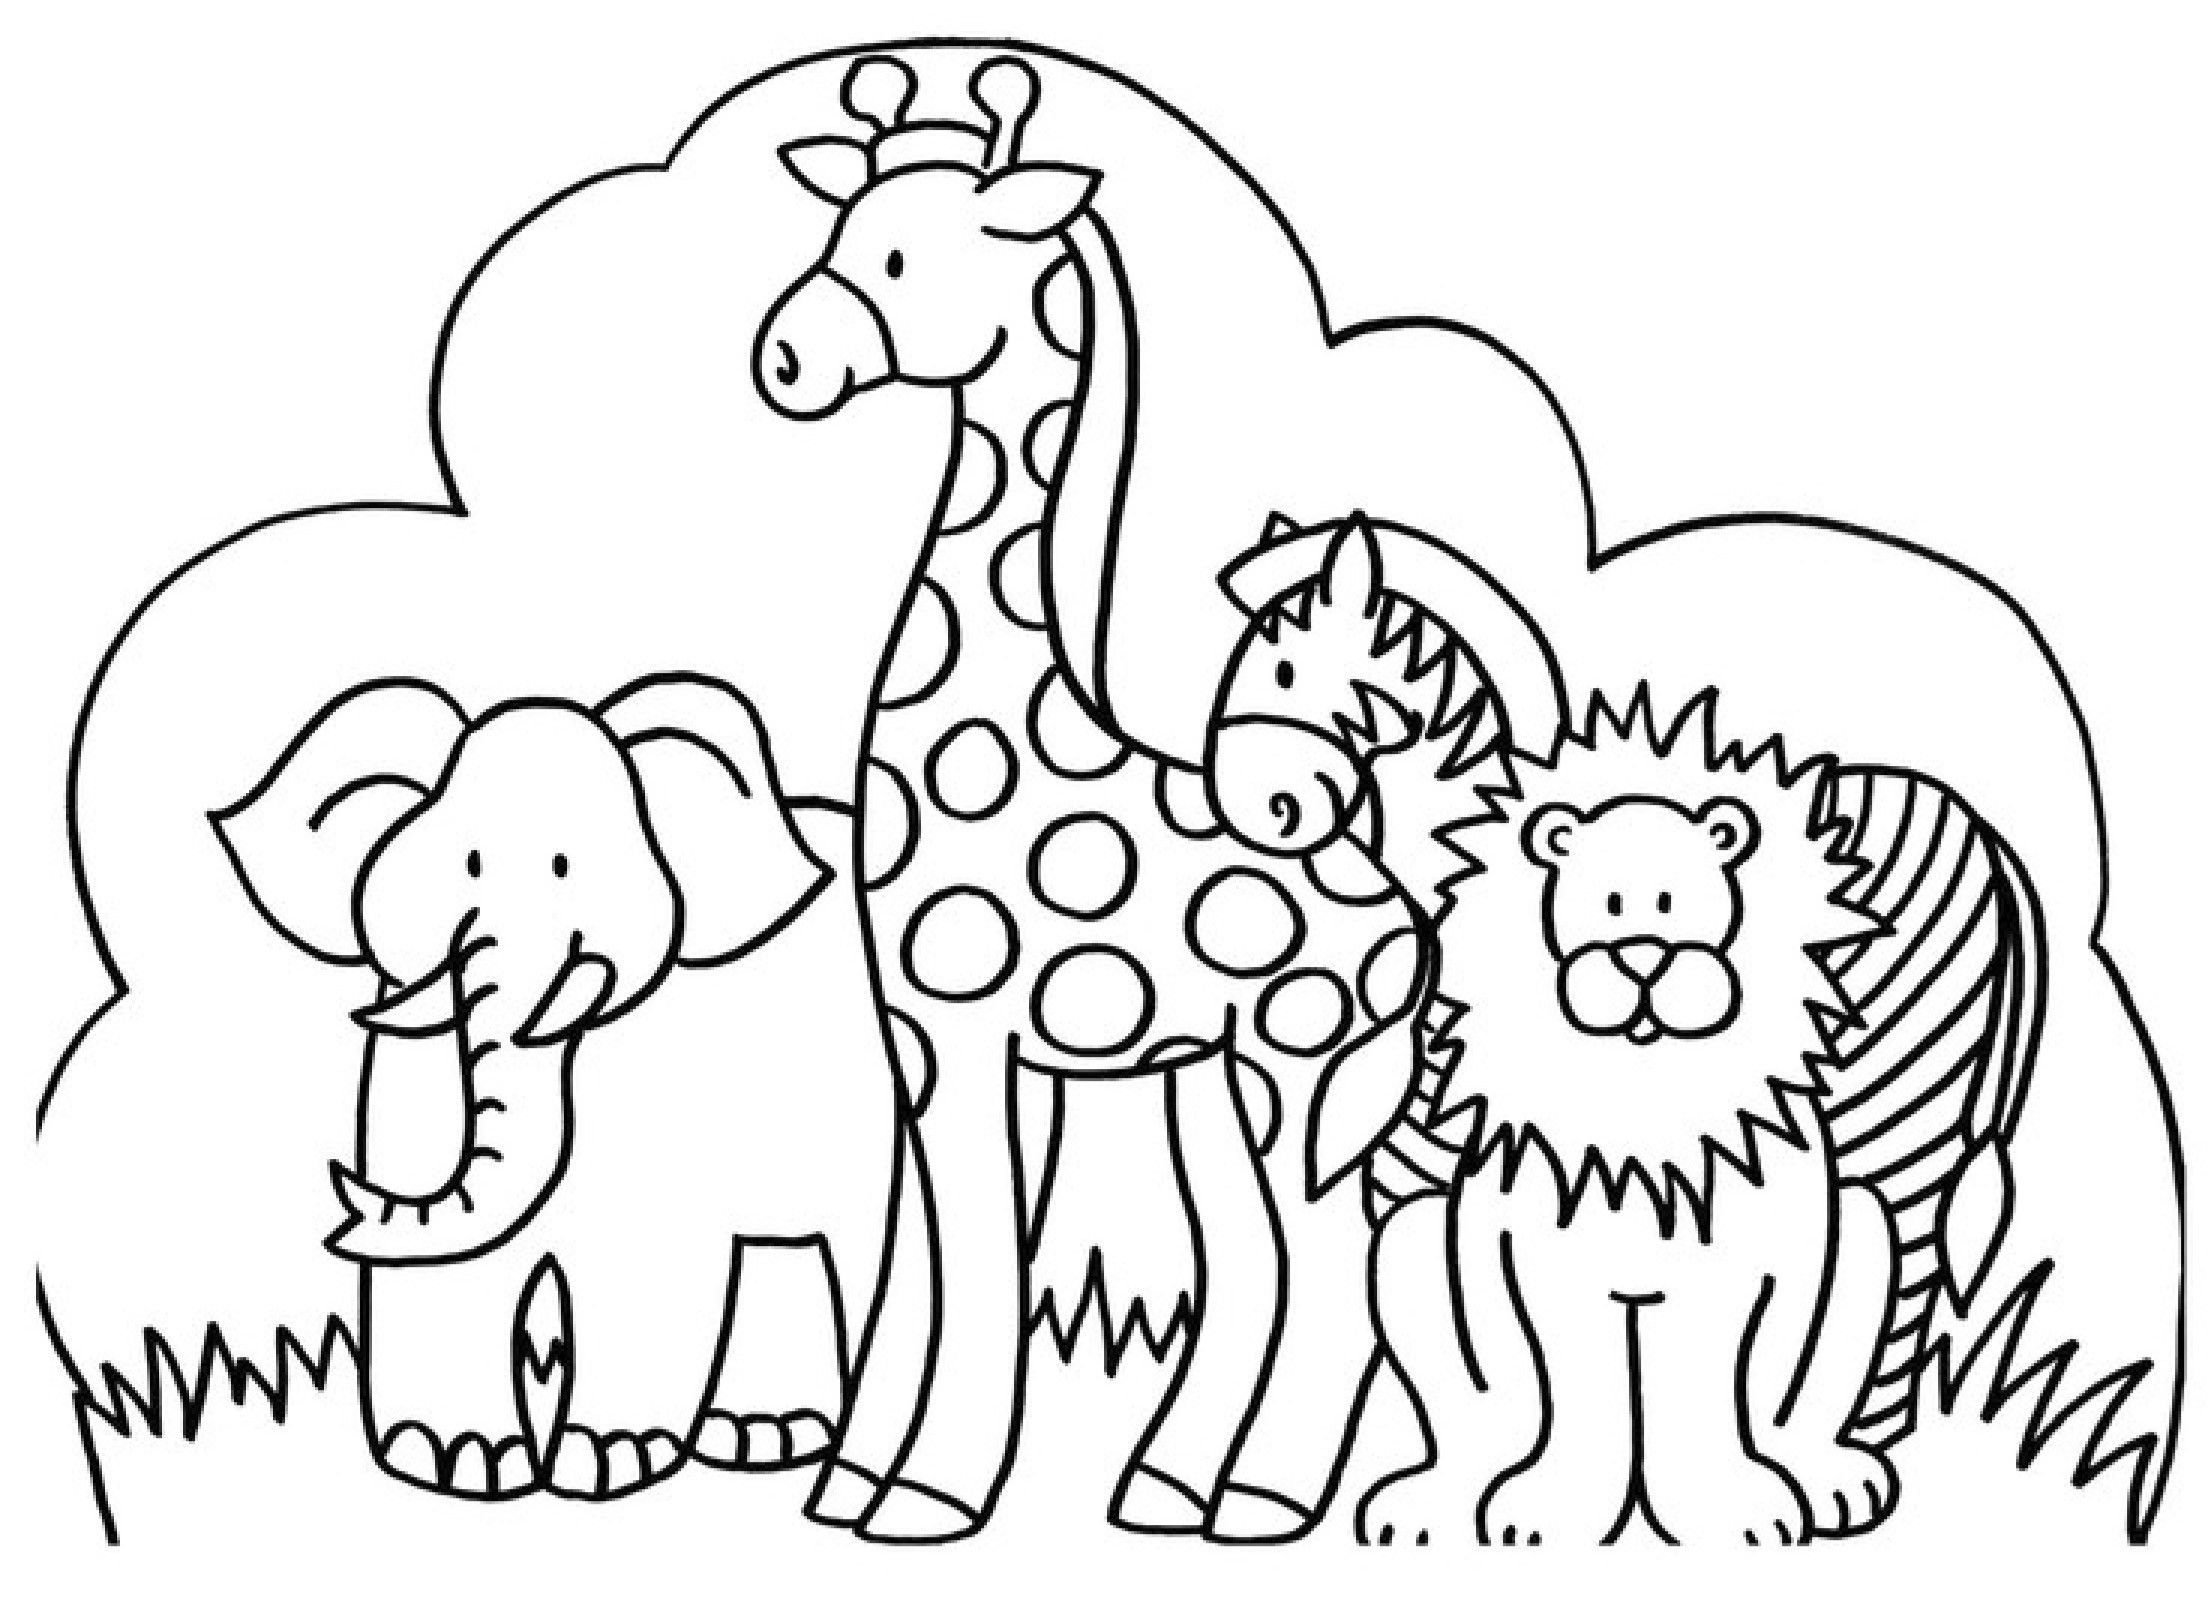 Neu Malvorlagen Tiere Drucken Family Coloring Pages Harry Potter Coloring Book Animal Coloring Pages